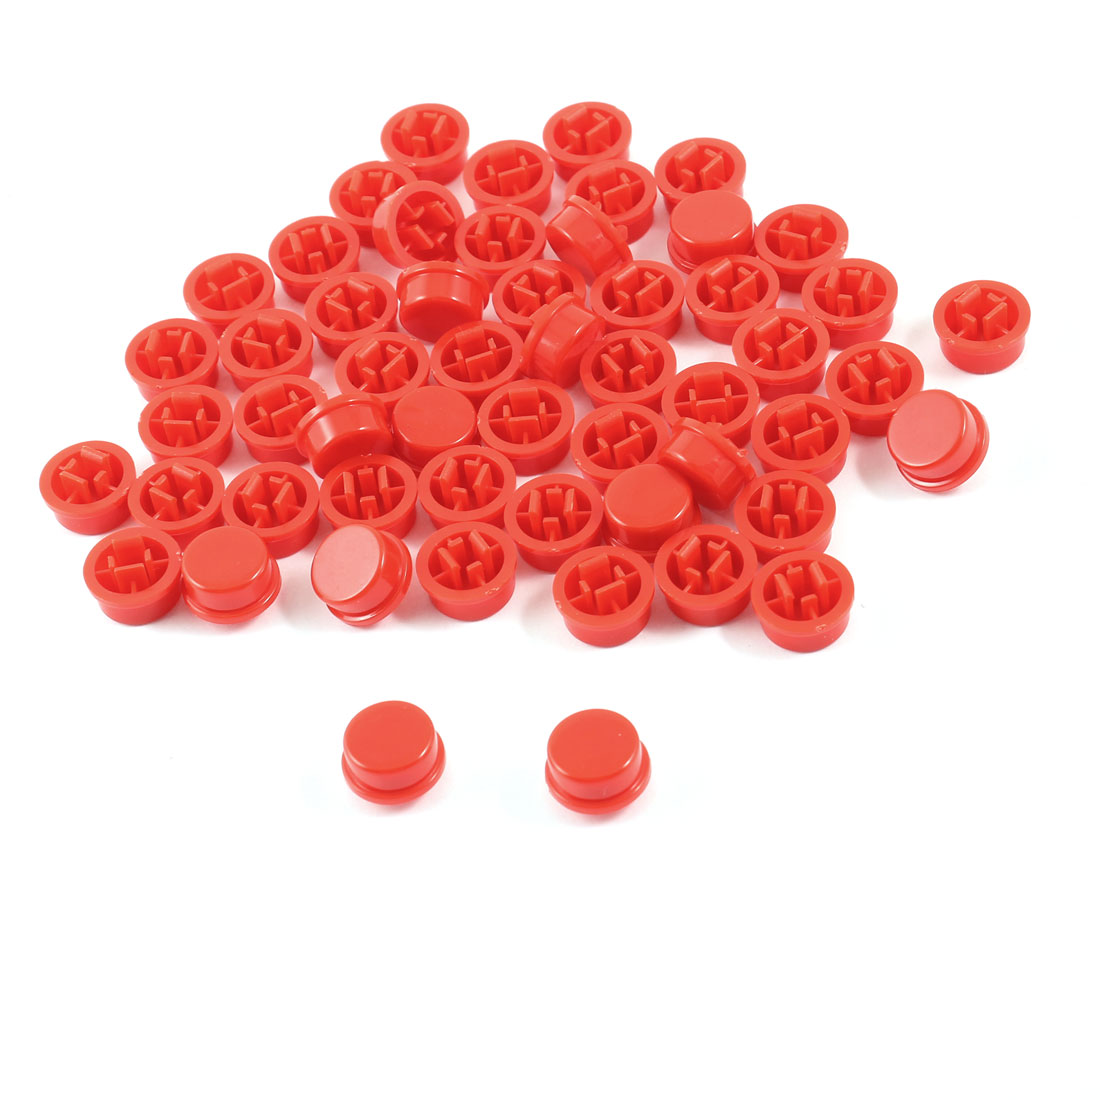 55 Pcs Round Tactile Button Caps Covers Protector Red for 12x12x7.3mm Tact Switch